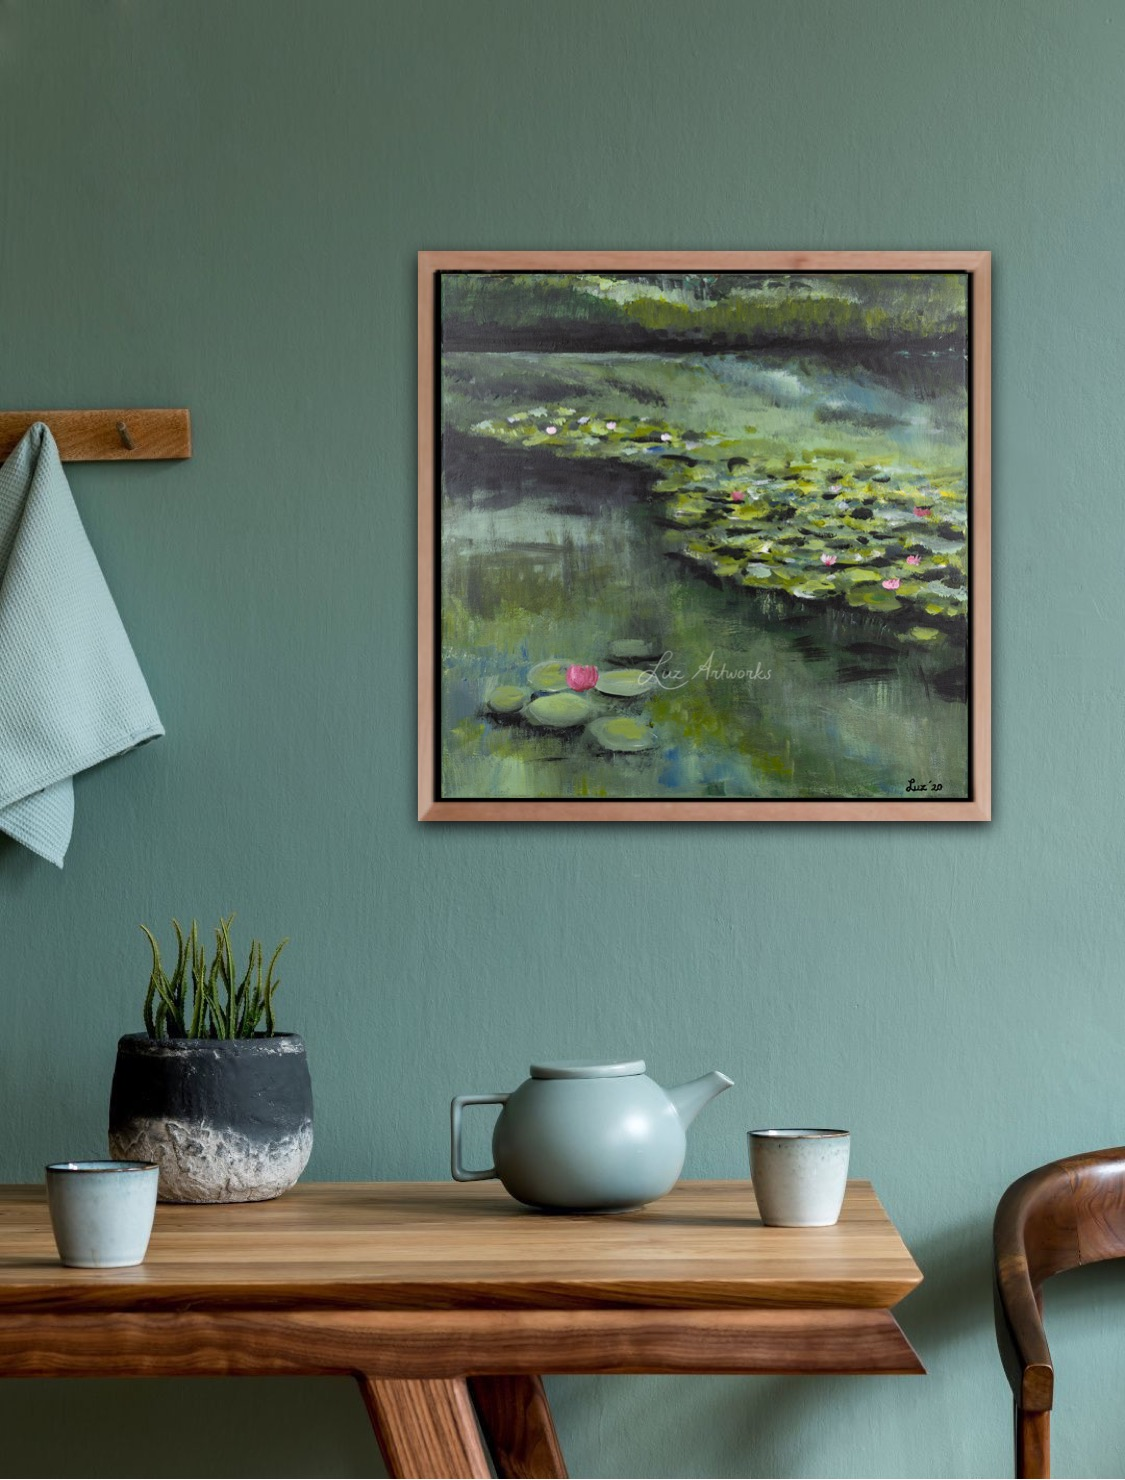 Painting Water Lilies 2020 by Marloes Bloedjes -Luz Artworks - On the wall